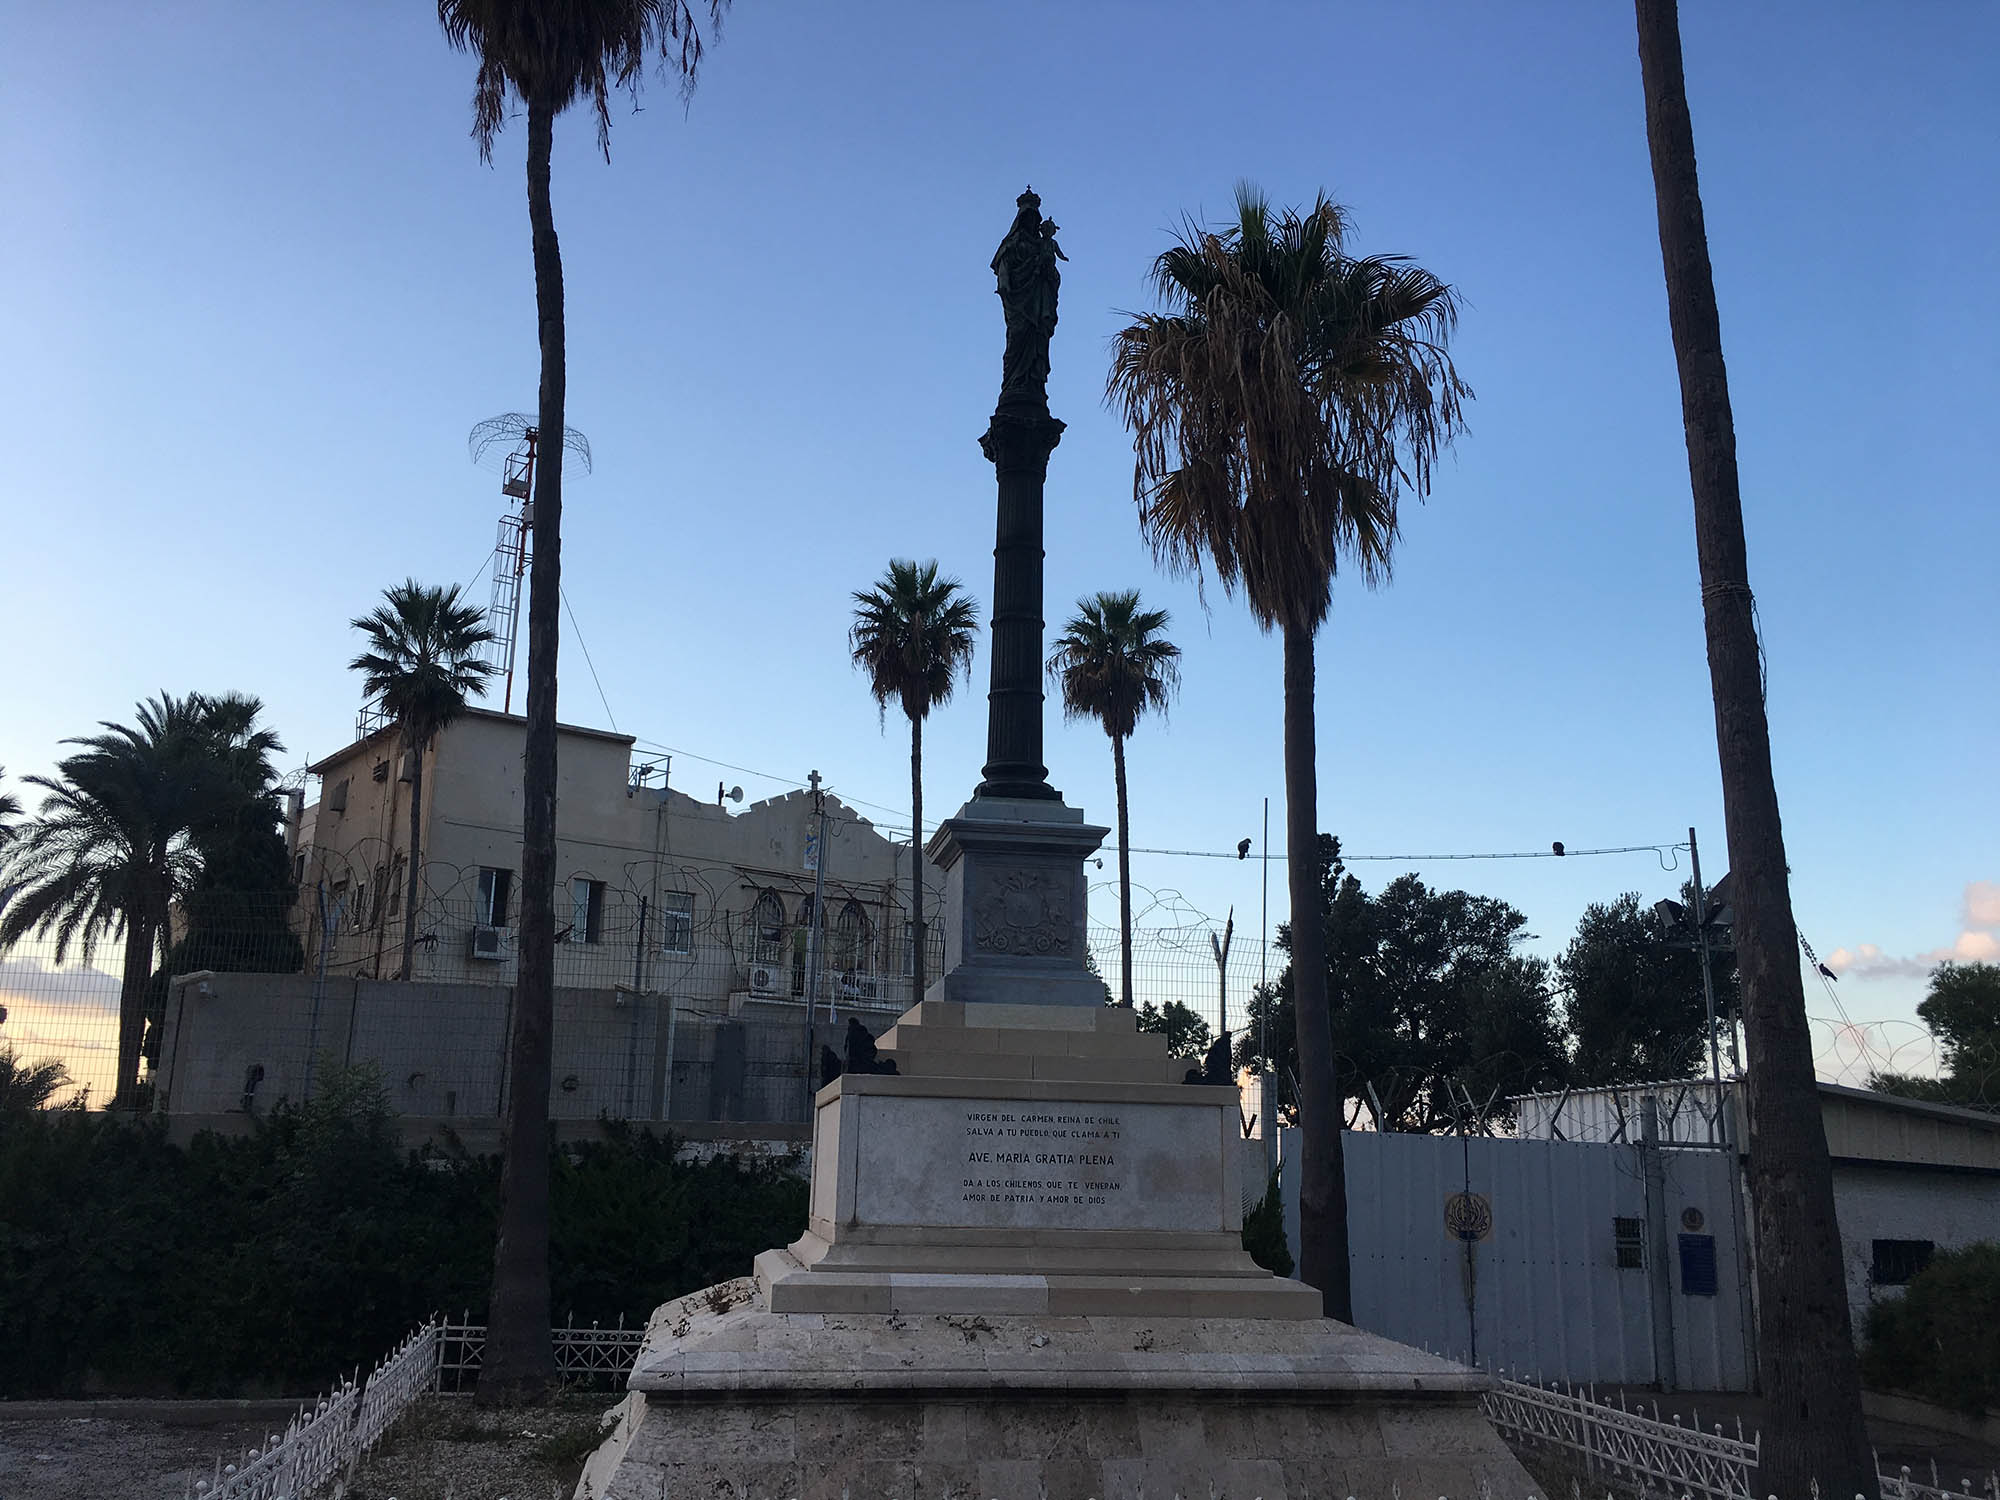 Statue near Stella Maris on Mount Carmel